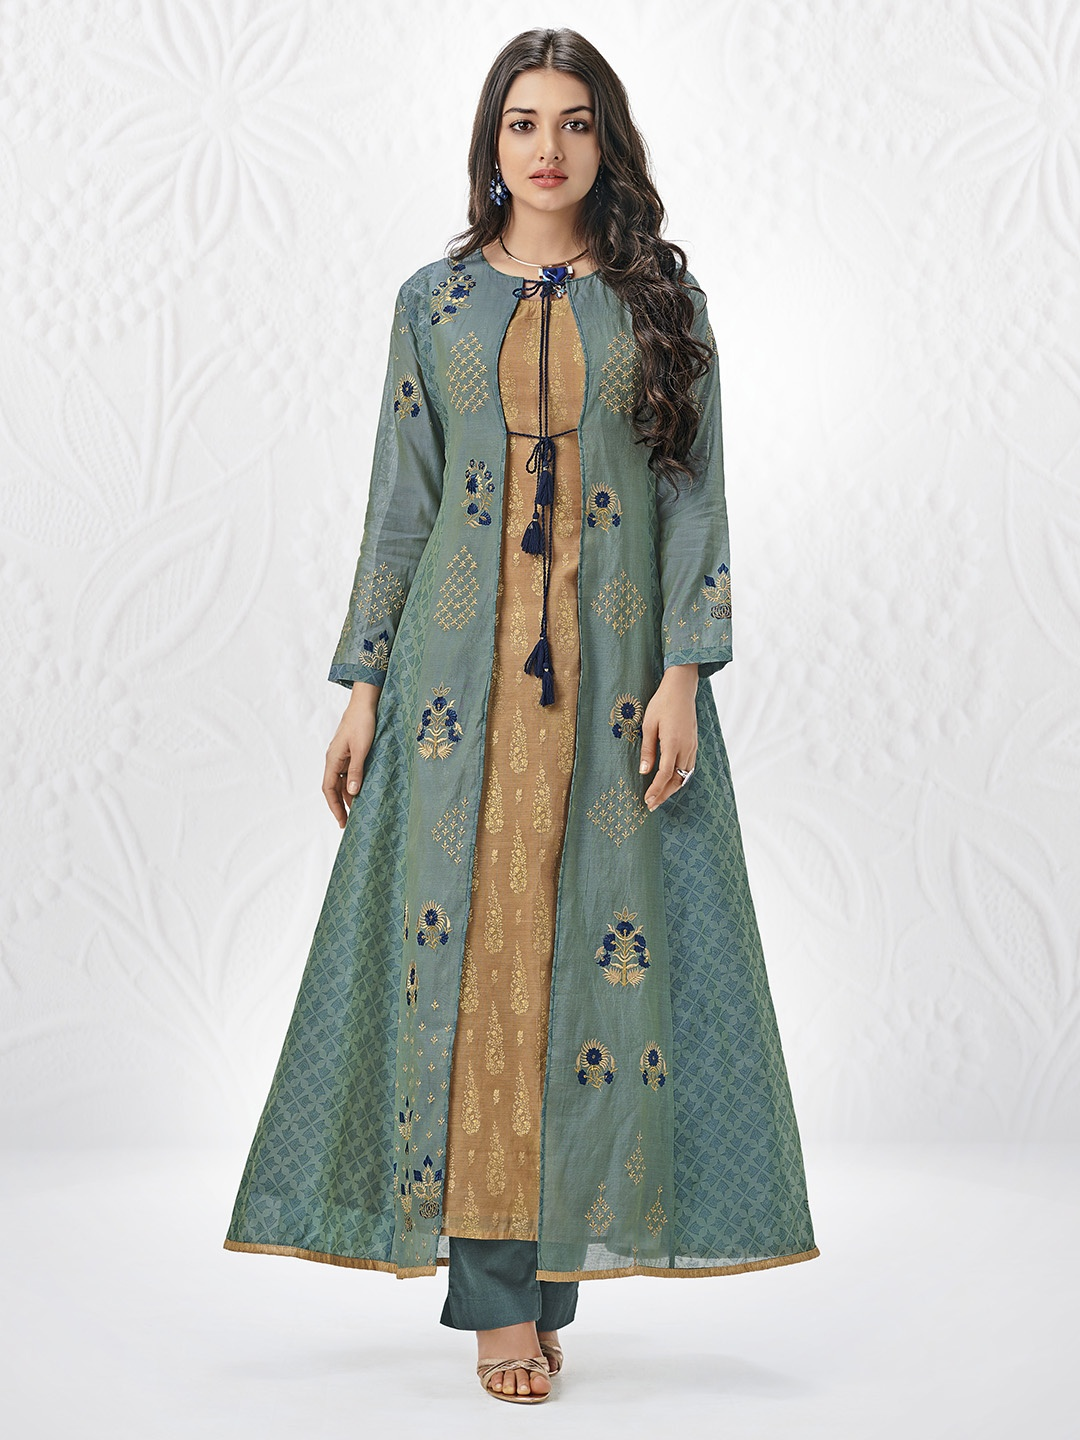 Jacket Style Salwar Suit In Mint Green Color G3 Wss26705